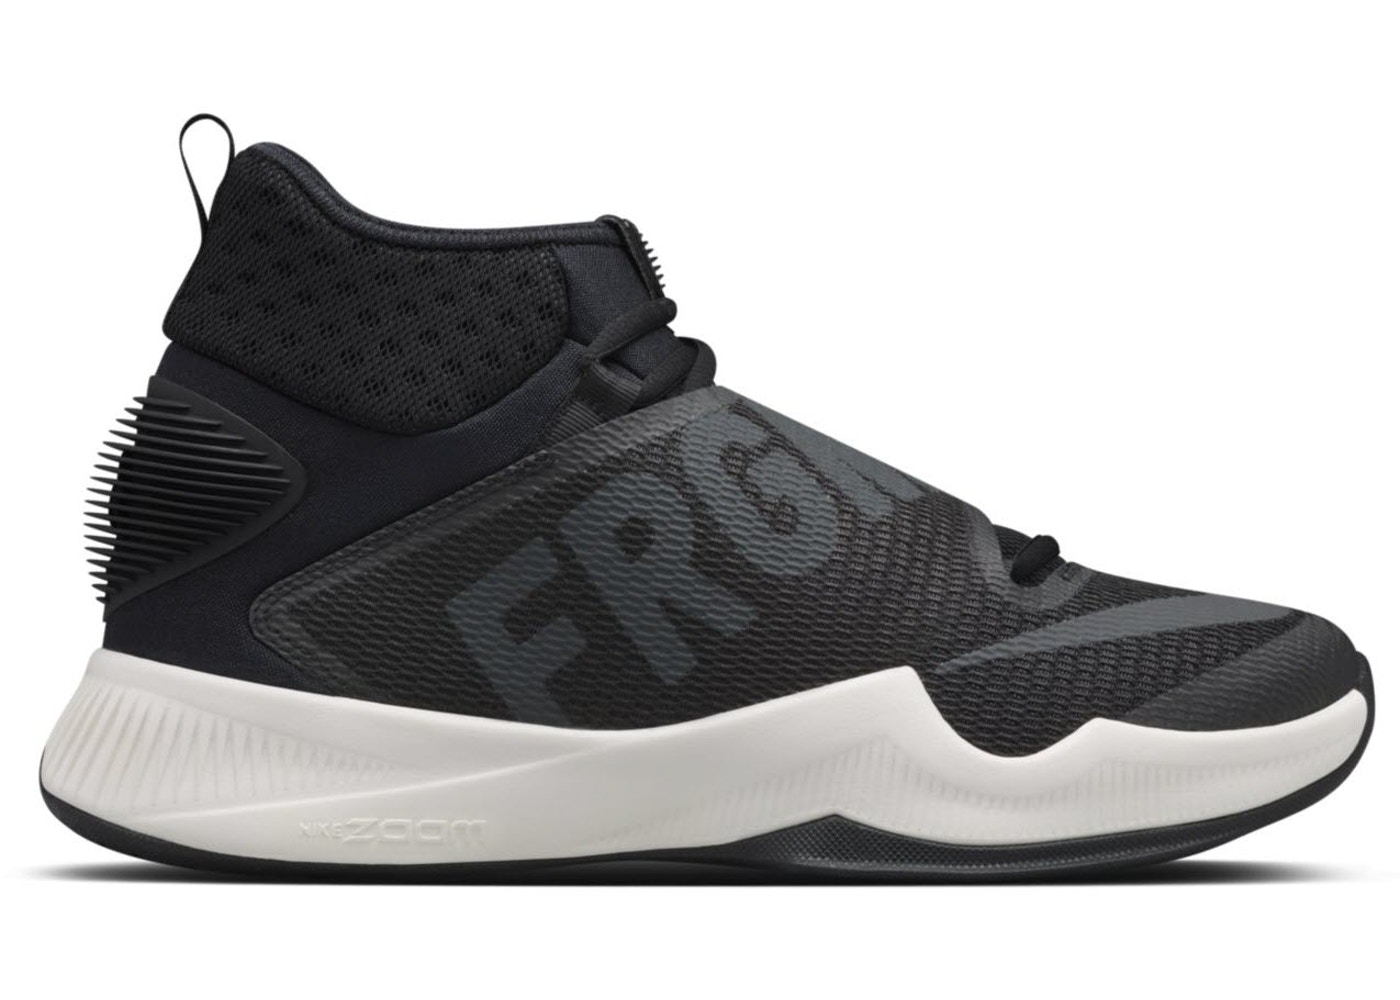 the best attitude 768b3 772ae Nike HyperRev 2016 Fragment Black - 848556-001